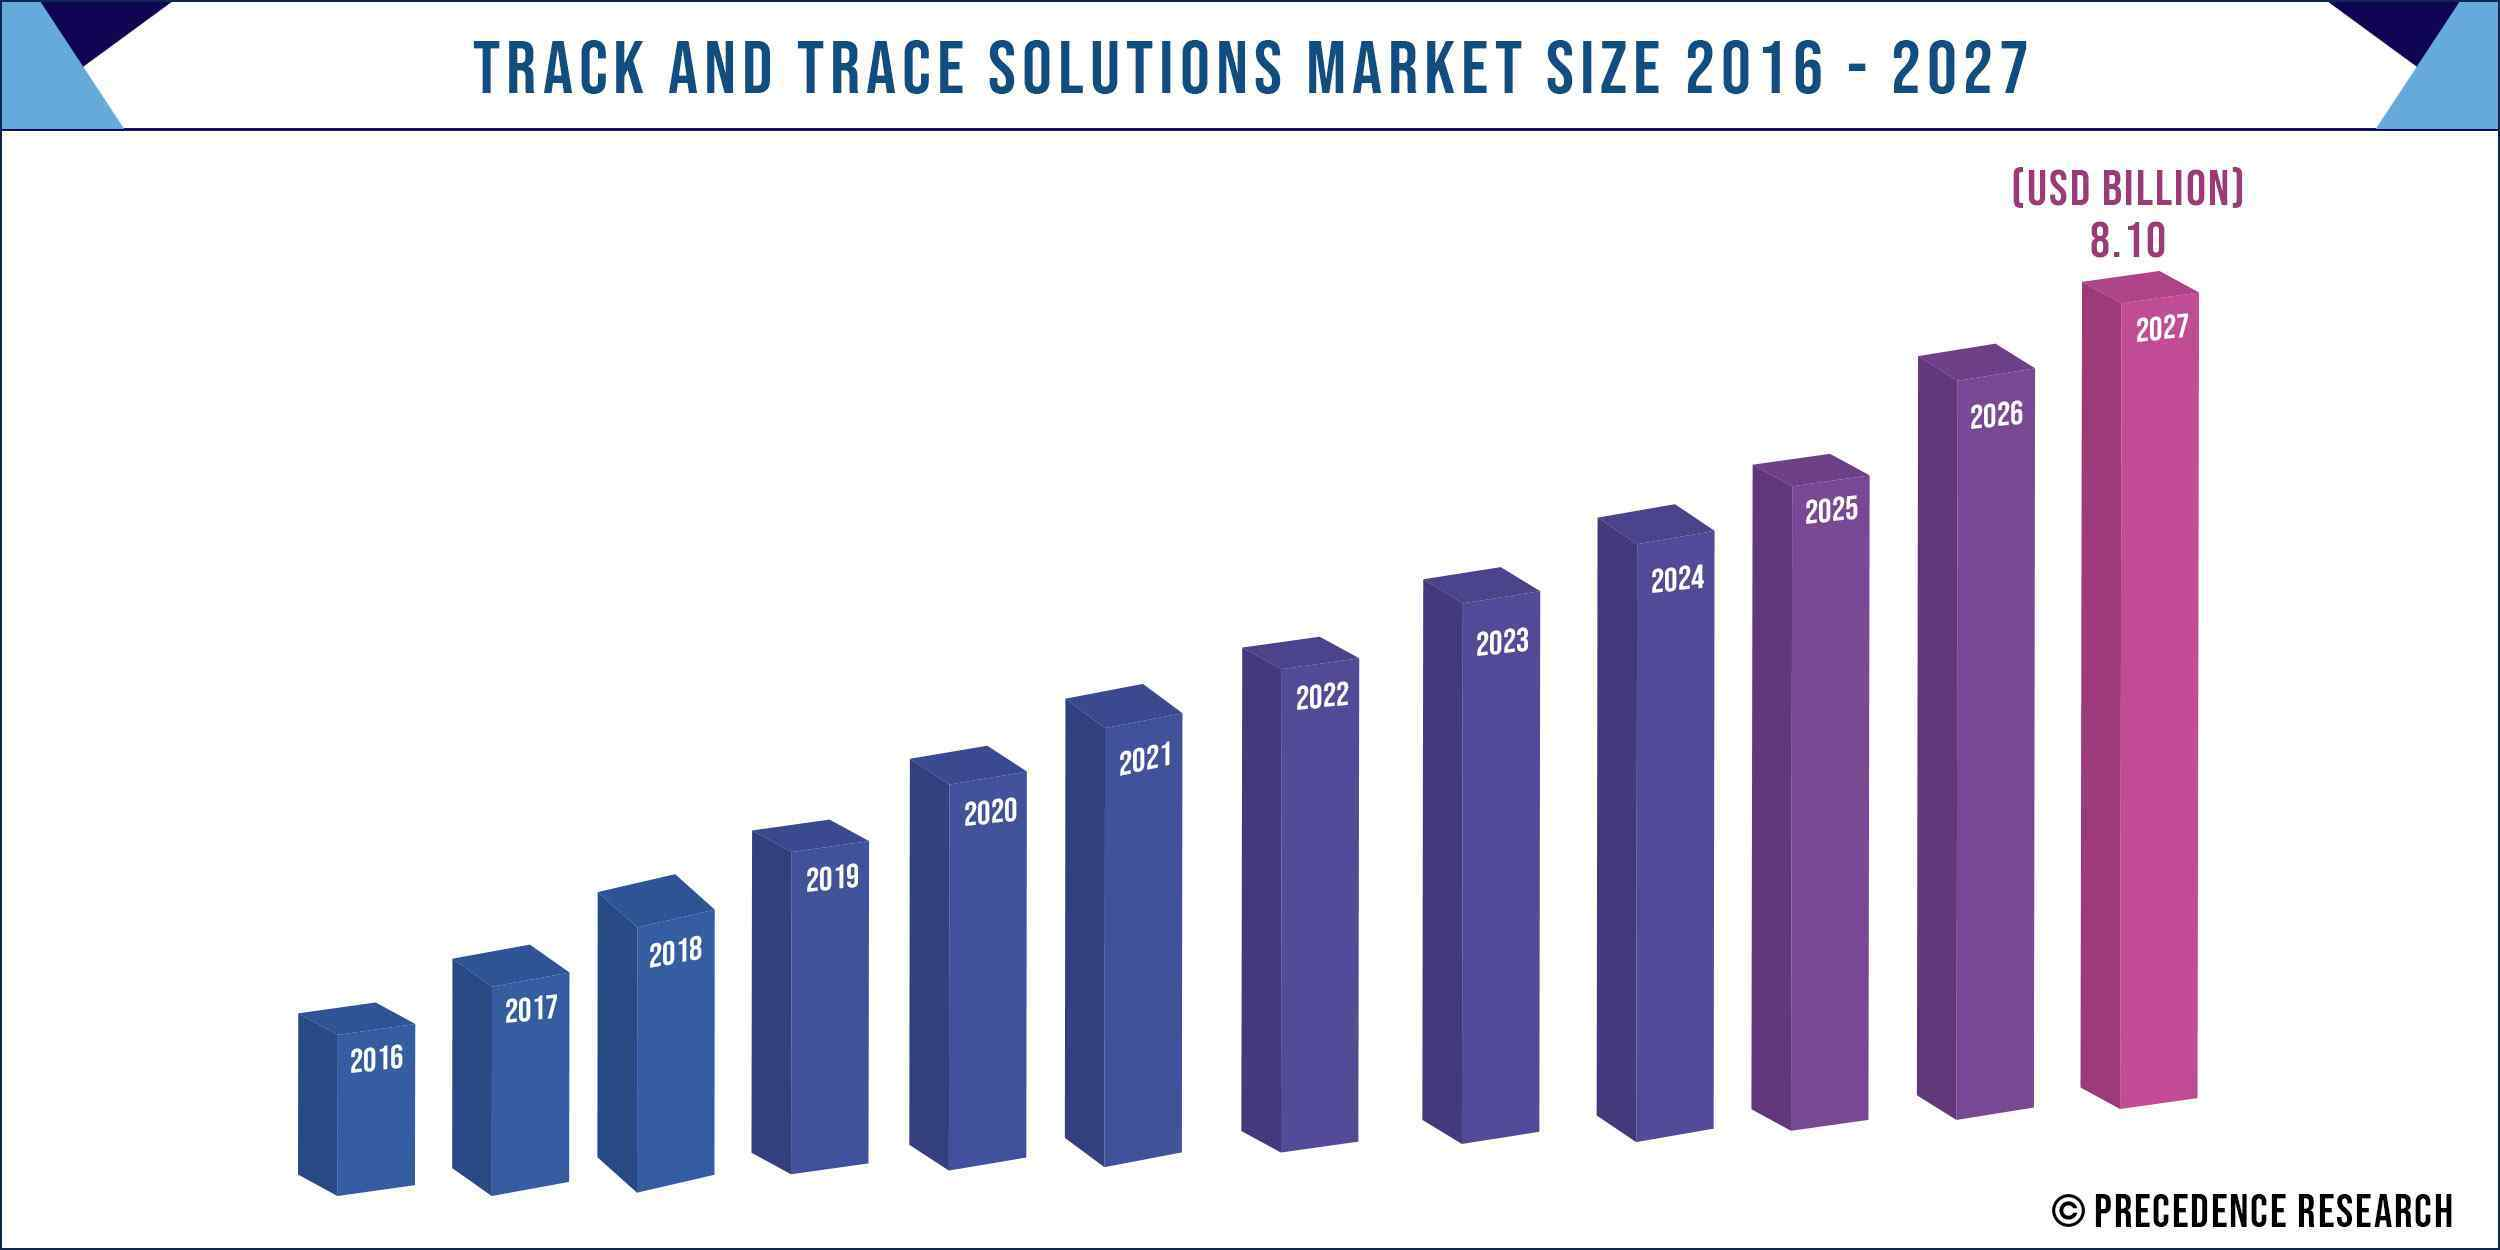 Track and Trace Solutions Market Size 2016 to 2027